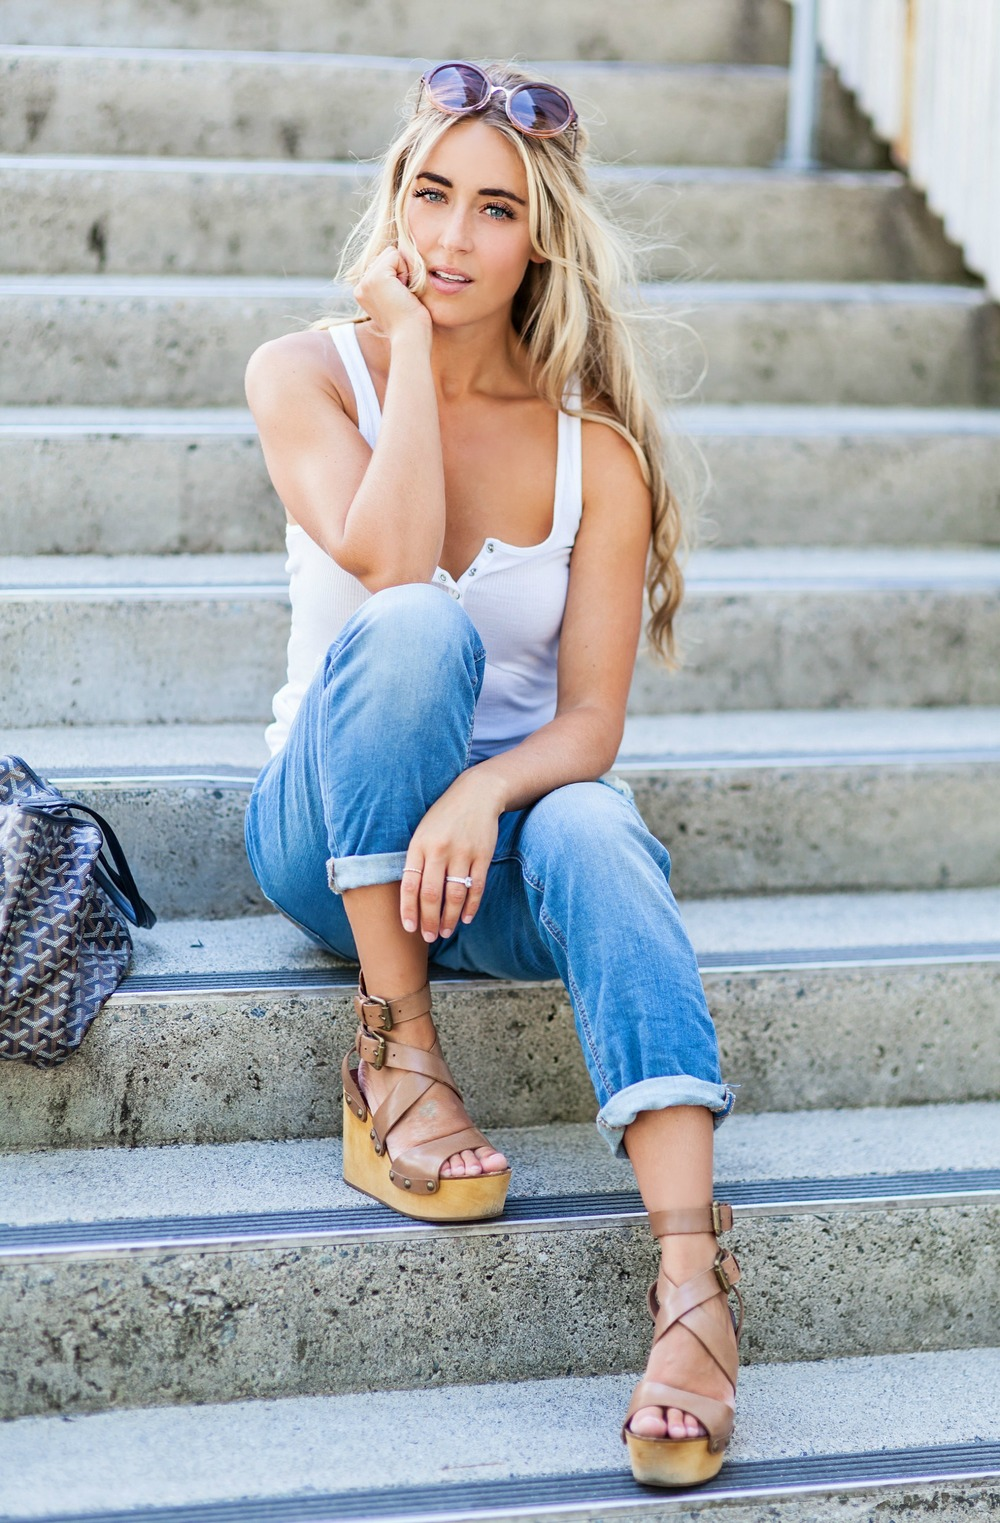 Photography by Allison Kuhl Express Top, Denim, Sunglasses